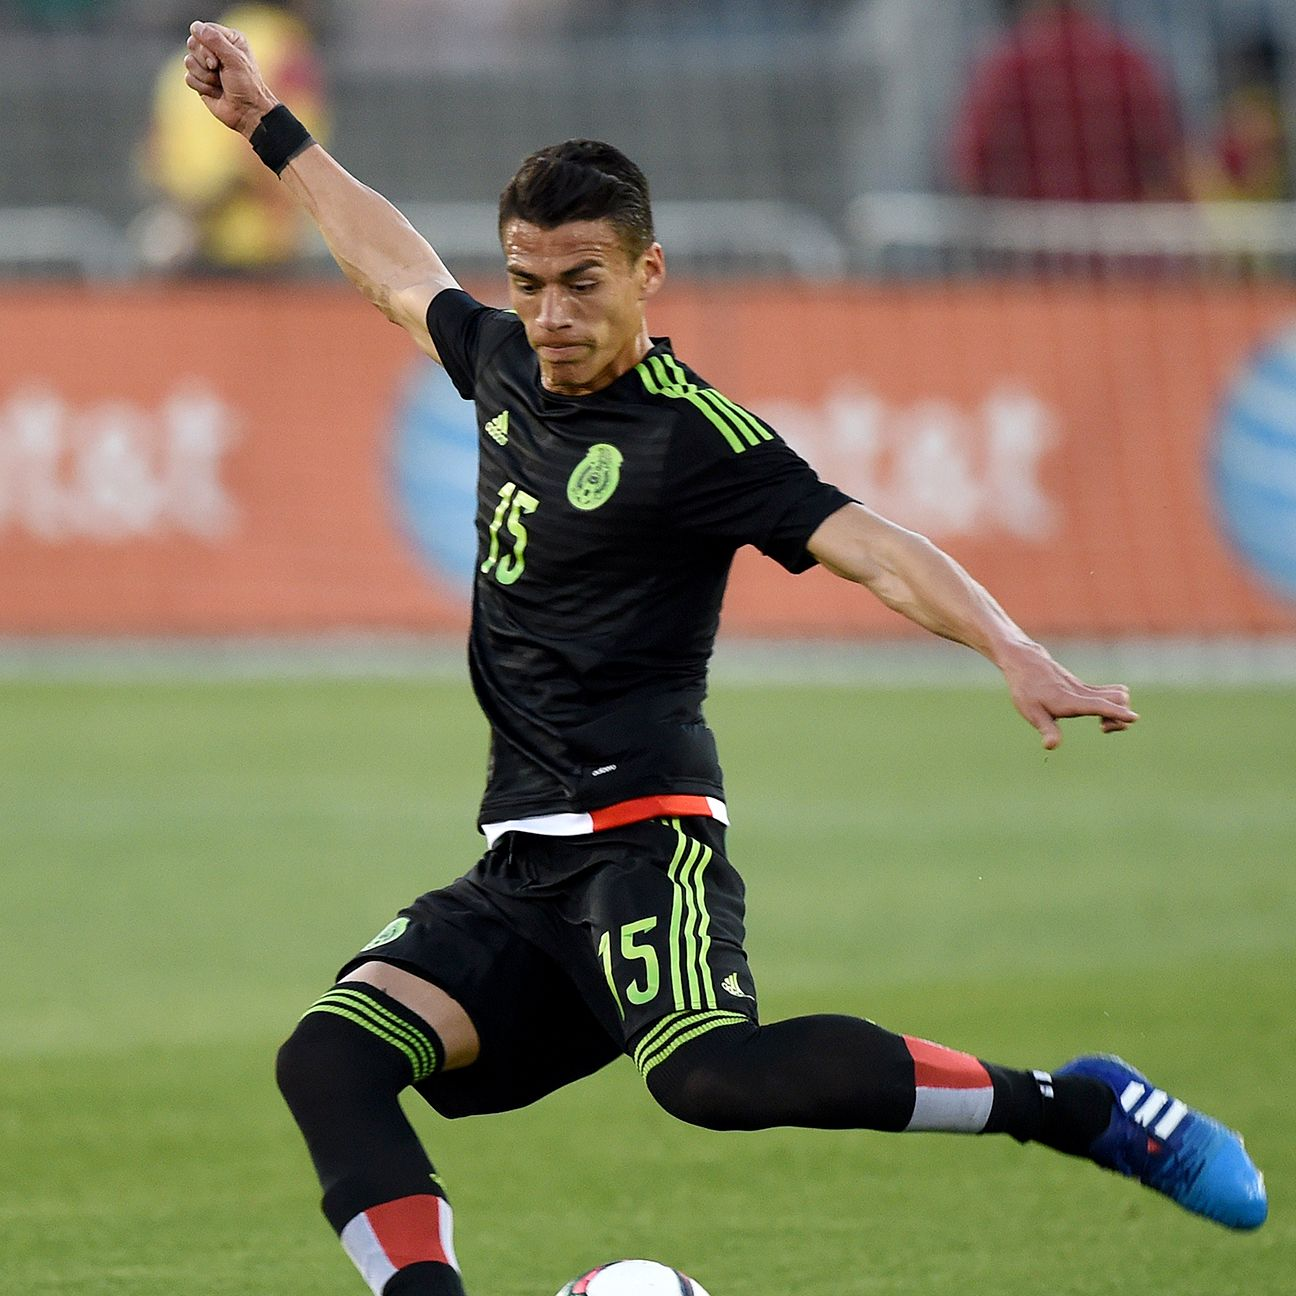 Injury has derailed another international summer for Mexico defender Hector Moreno.